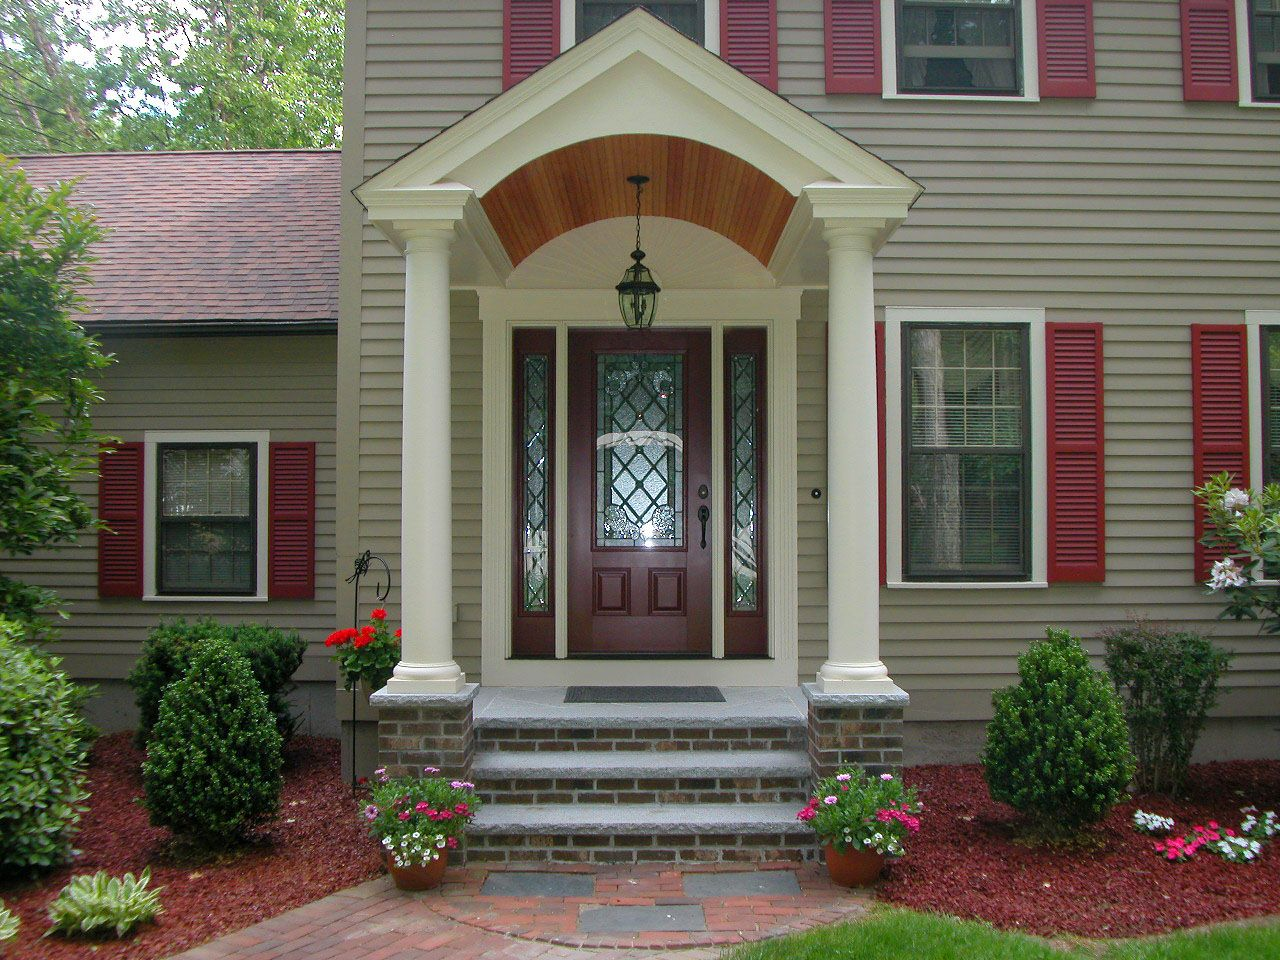 Porch Design Ideas sun porch design ideas columbus decks porches and patios by archadeck Colonial Porch Over Front Door Front Porch Ideas Furniture Fascinating Front Porch Design Ideas